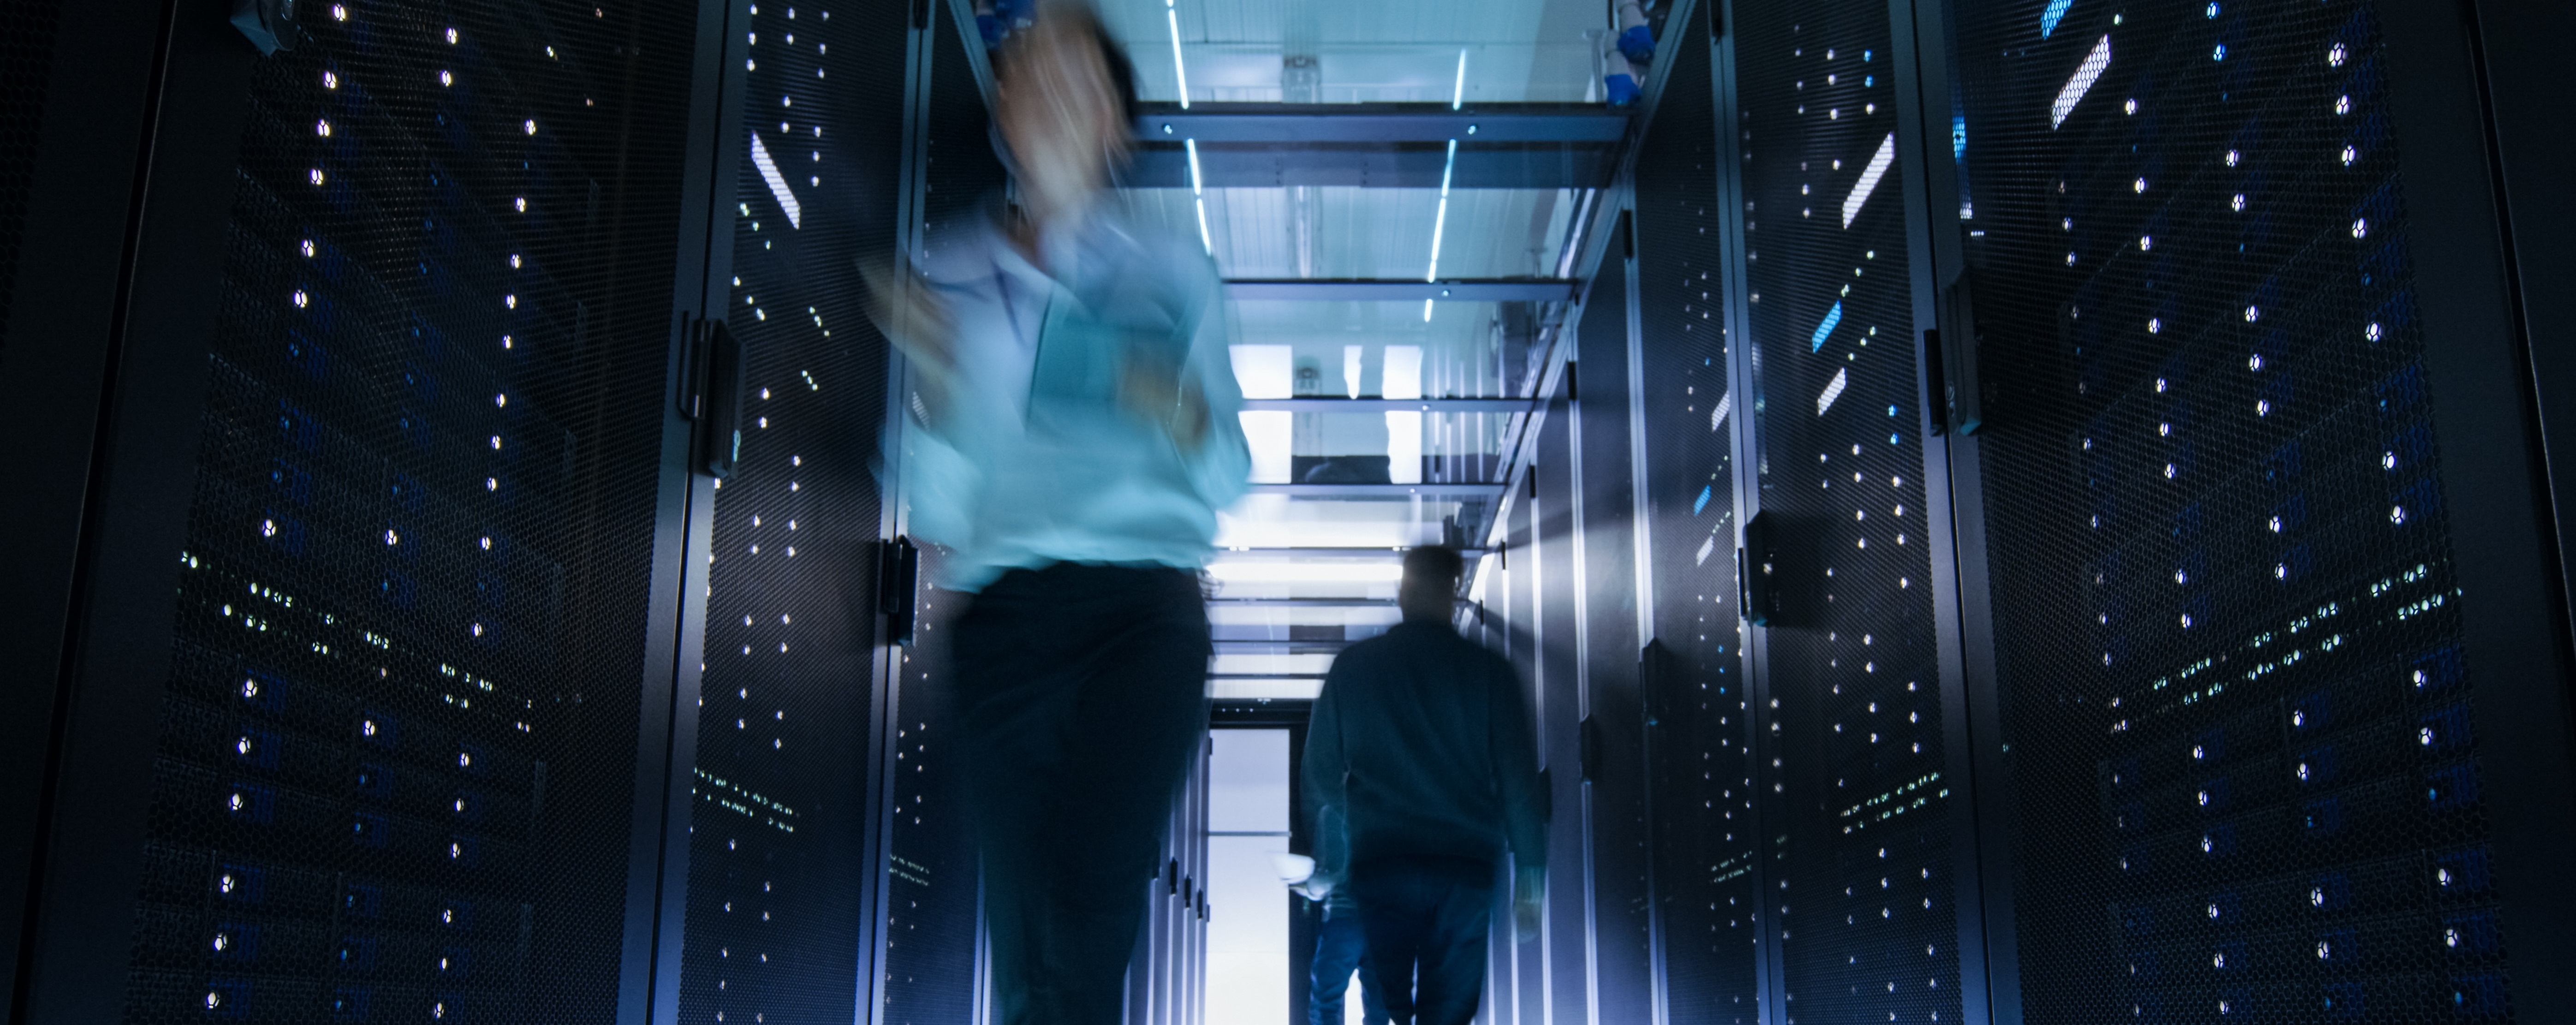 3 Strategies to Increase Data Center Efficiency  - Featured Image